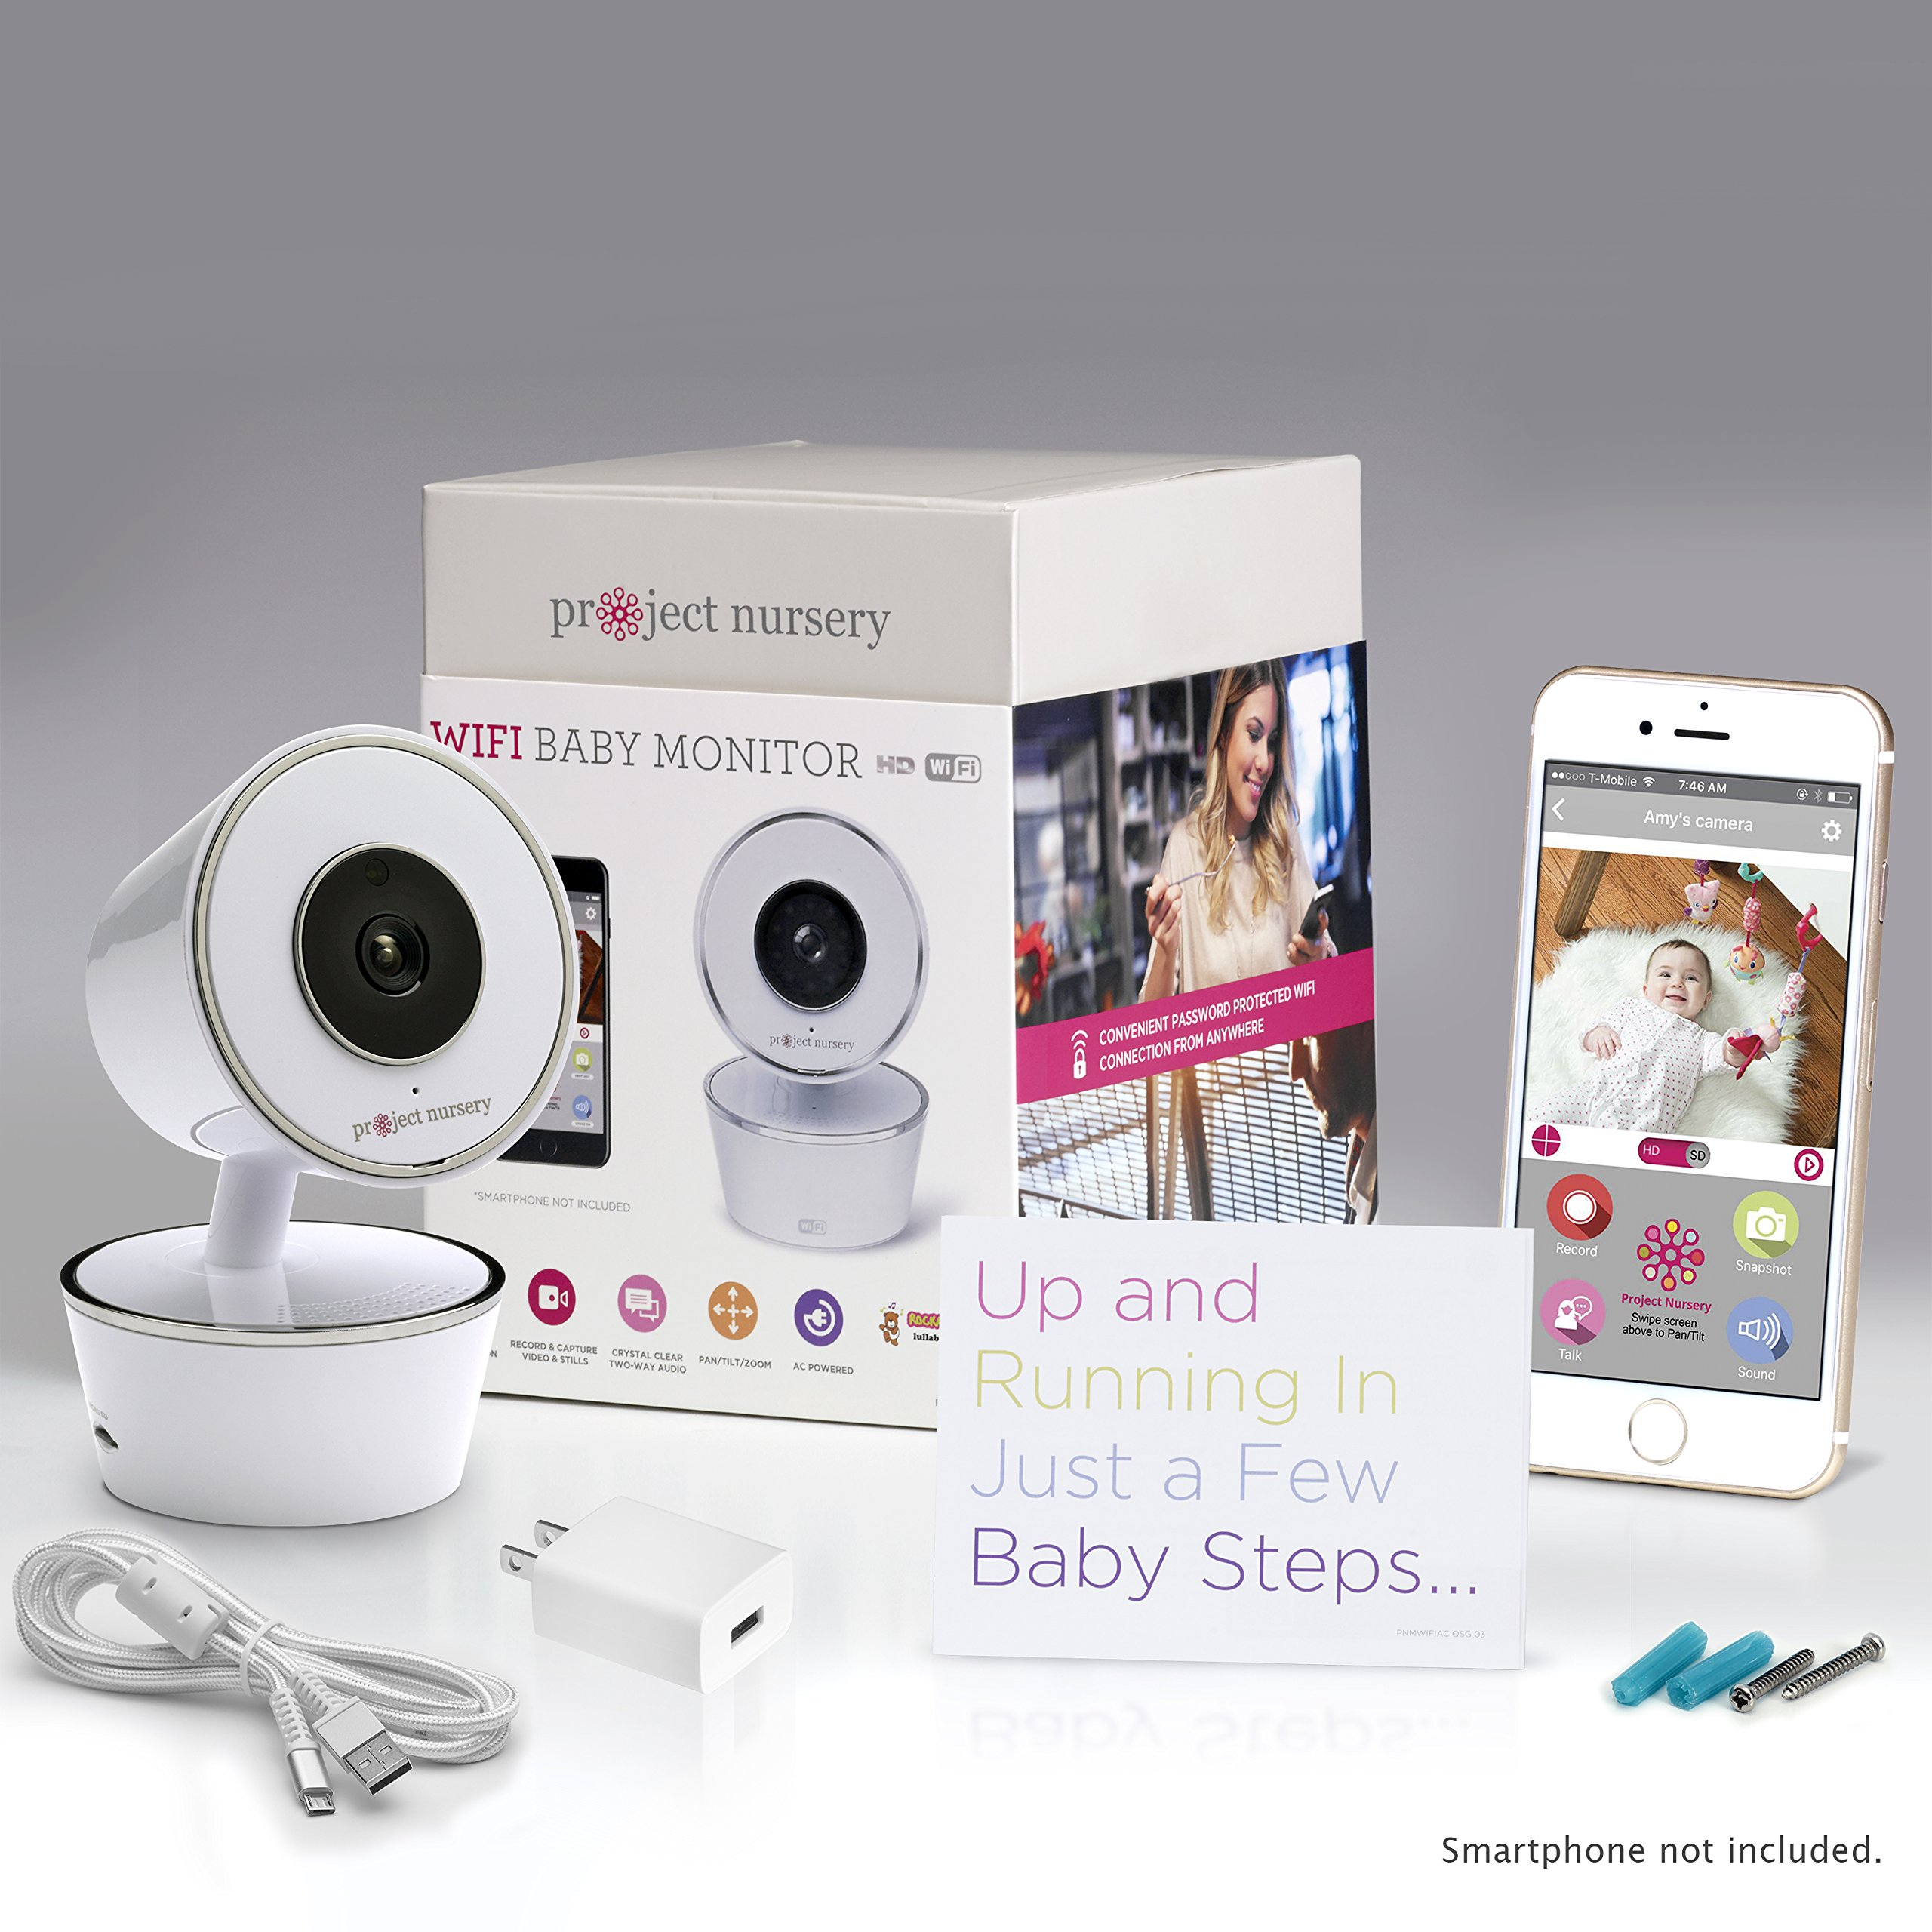 Project Nursery HD WiFi Video Baby Monitor System with Sound, Motion & Temperature Alerts & an App for iOS, Android and Any Smartphone or Tablet by Project Nursery (Image #2)